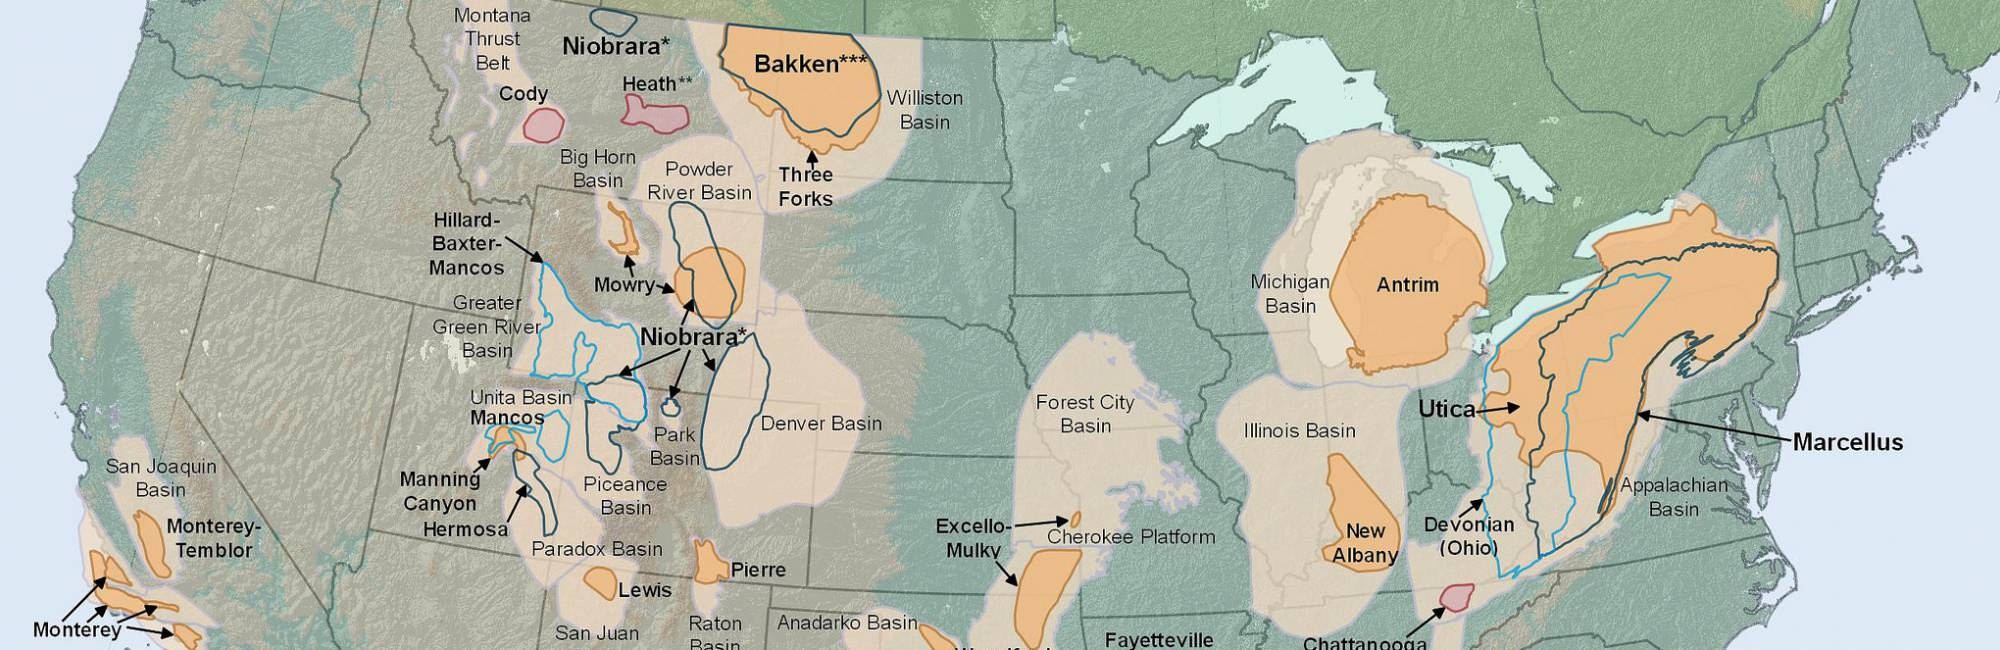 Shale natural gas fields in the lower 48 states